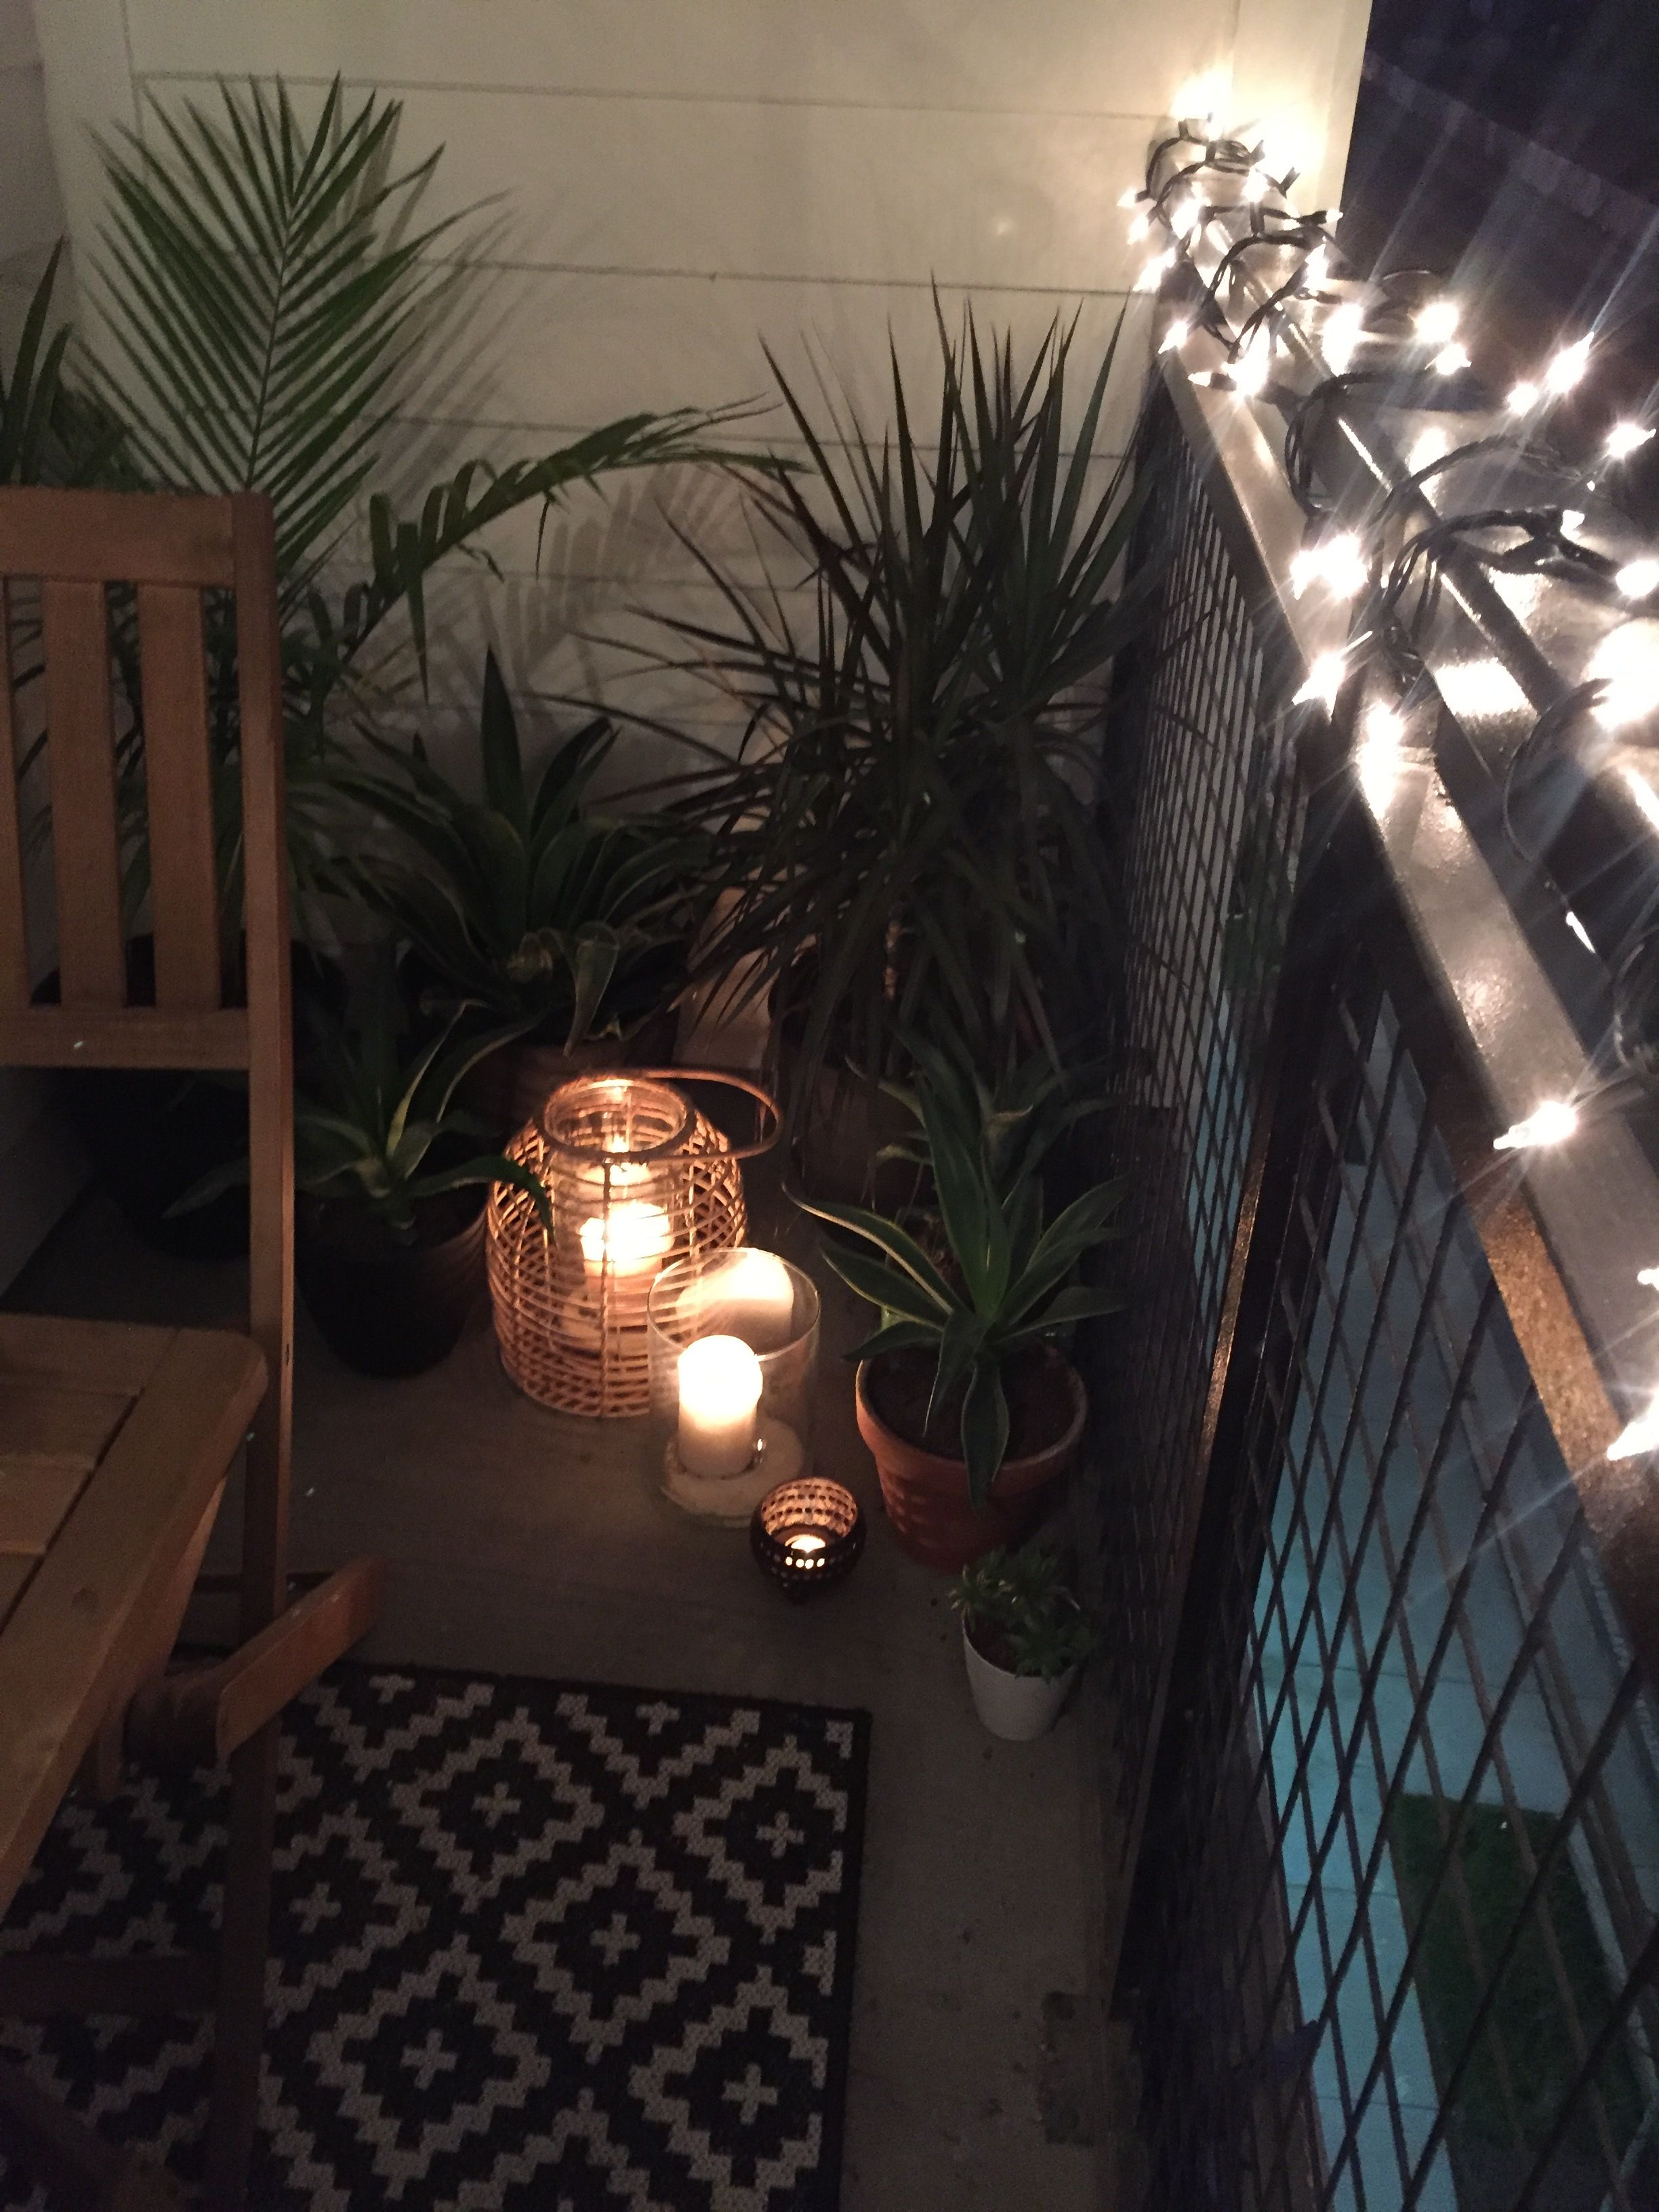 Small Apartment Balcony Garden Ideas: Tropical Plants, Candles, Lanterns, String Lights, Small